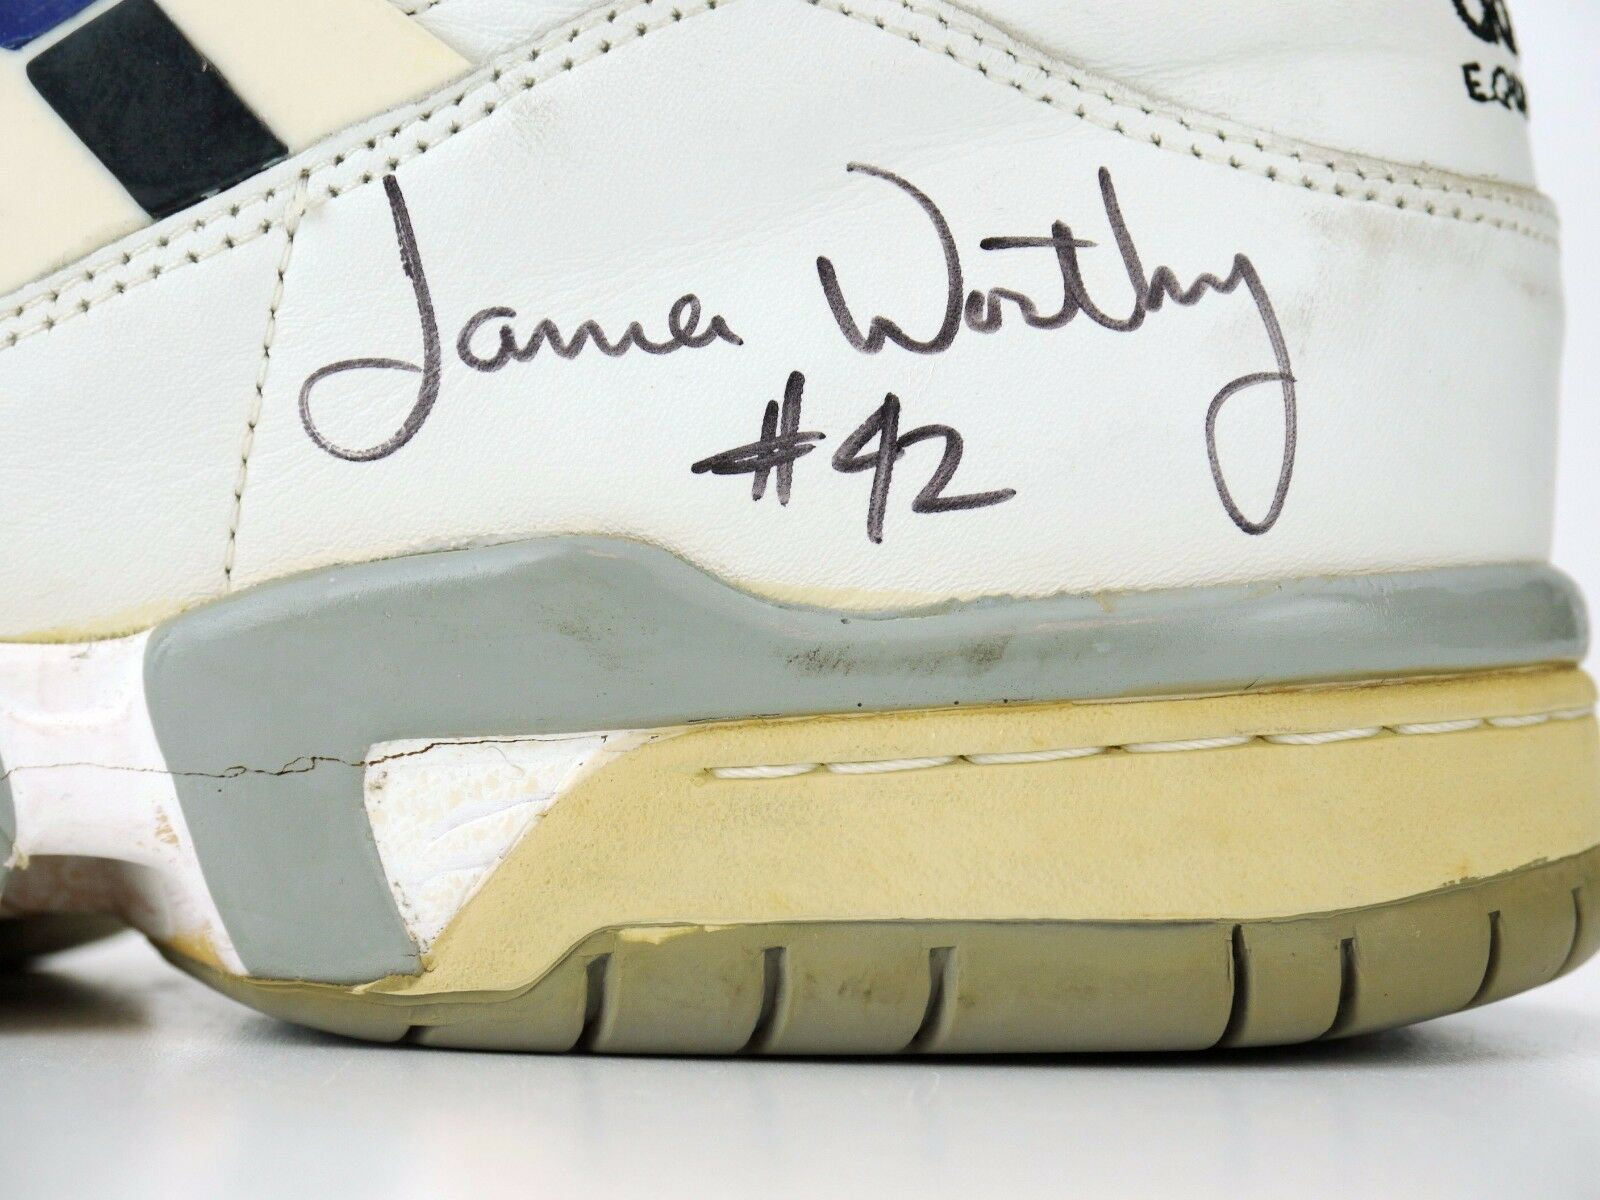 Vintage Adidas Equipment Equipment Equipment James Worthy PE Signed Left shoes Only size 15 381ec6